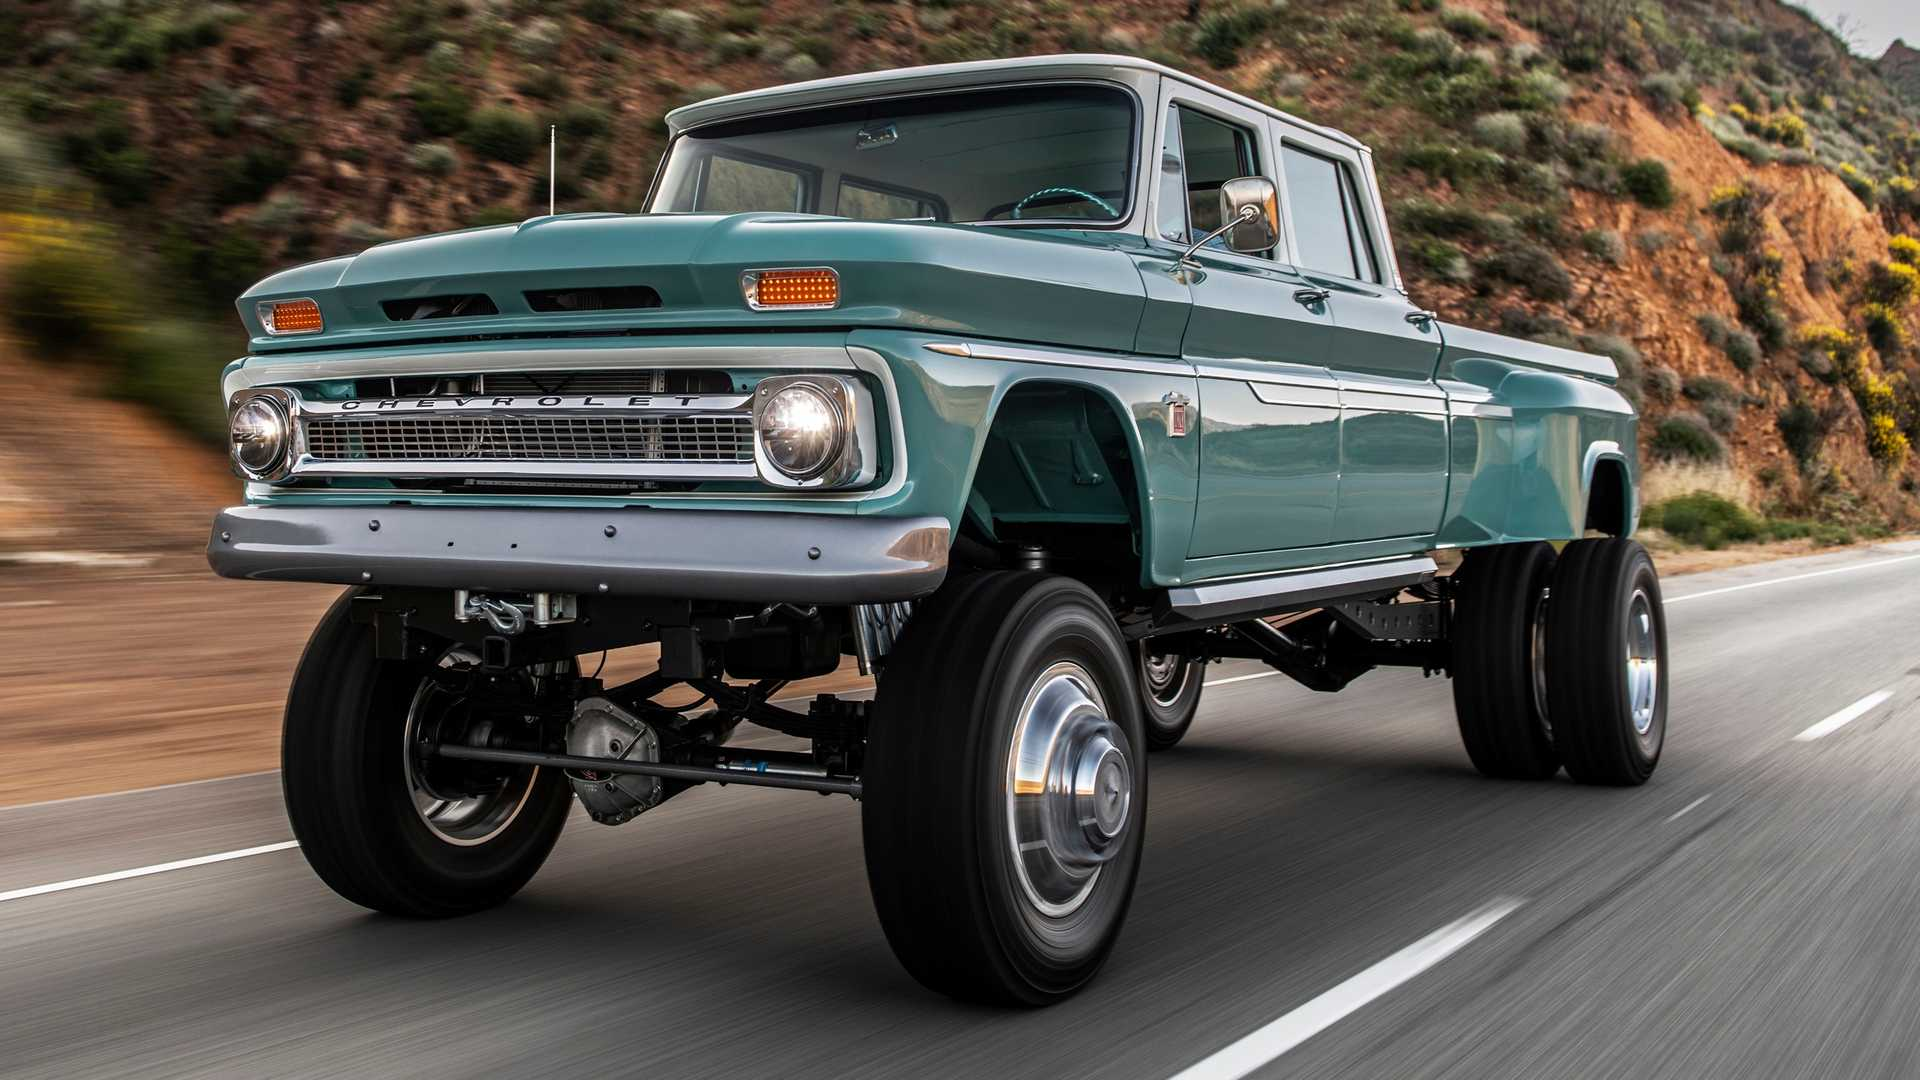 Famous comedian and car aficionado Jay Leno has uploaded a YouTube video dedicated to the two restored Chevrolet trucks: a 1966 Ponderosa and a 1972 Duke.